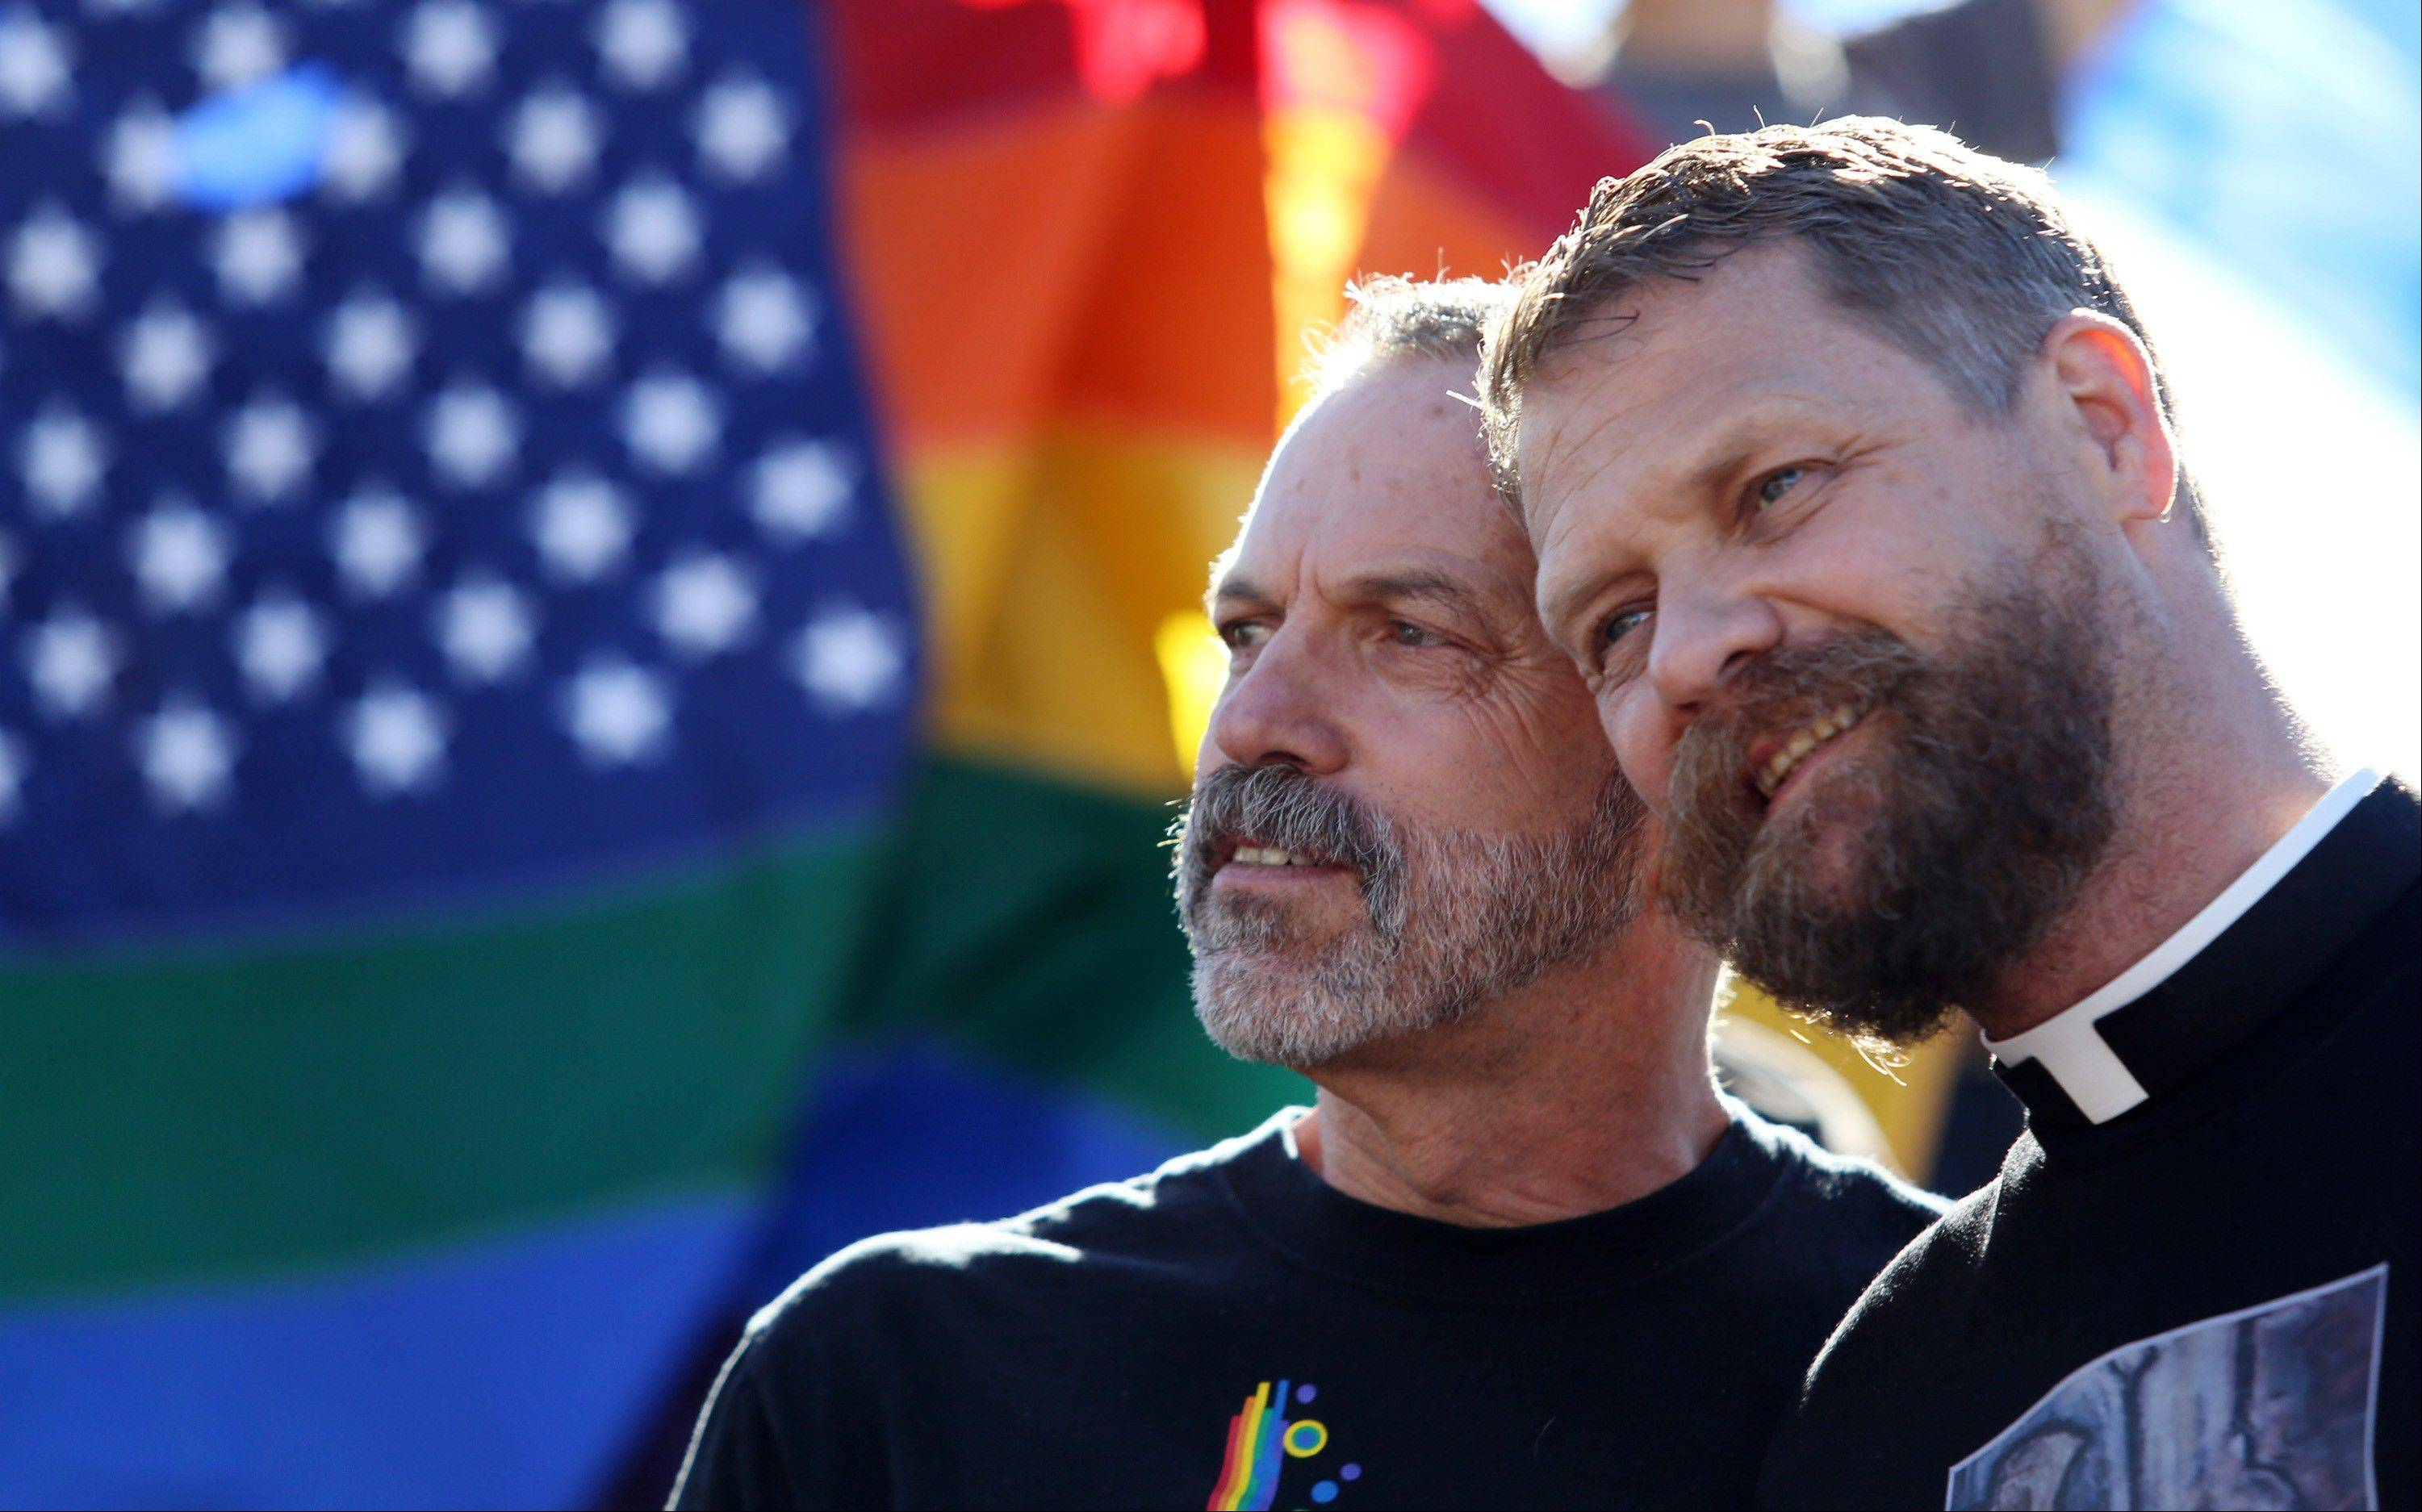 Associated Press Michael Deschenes, left, and Cary Bass, who had church wedding and plan to become legally married, stand together at a celebration for the U. S. Supreme Court's rulings on Prop. 8 and DOMA in the Castro District in San Francisco, on Wednesday, June 26, 2013.